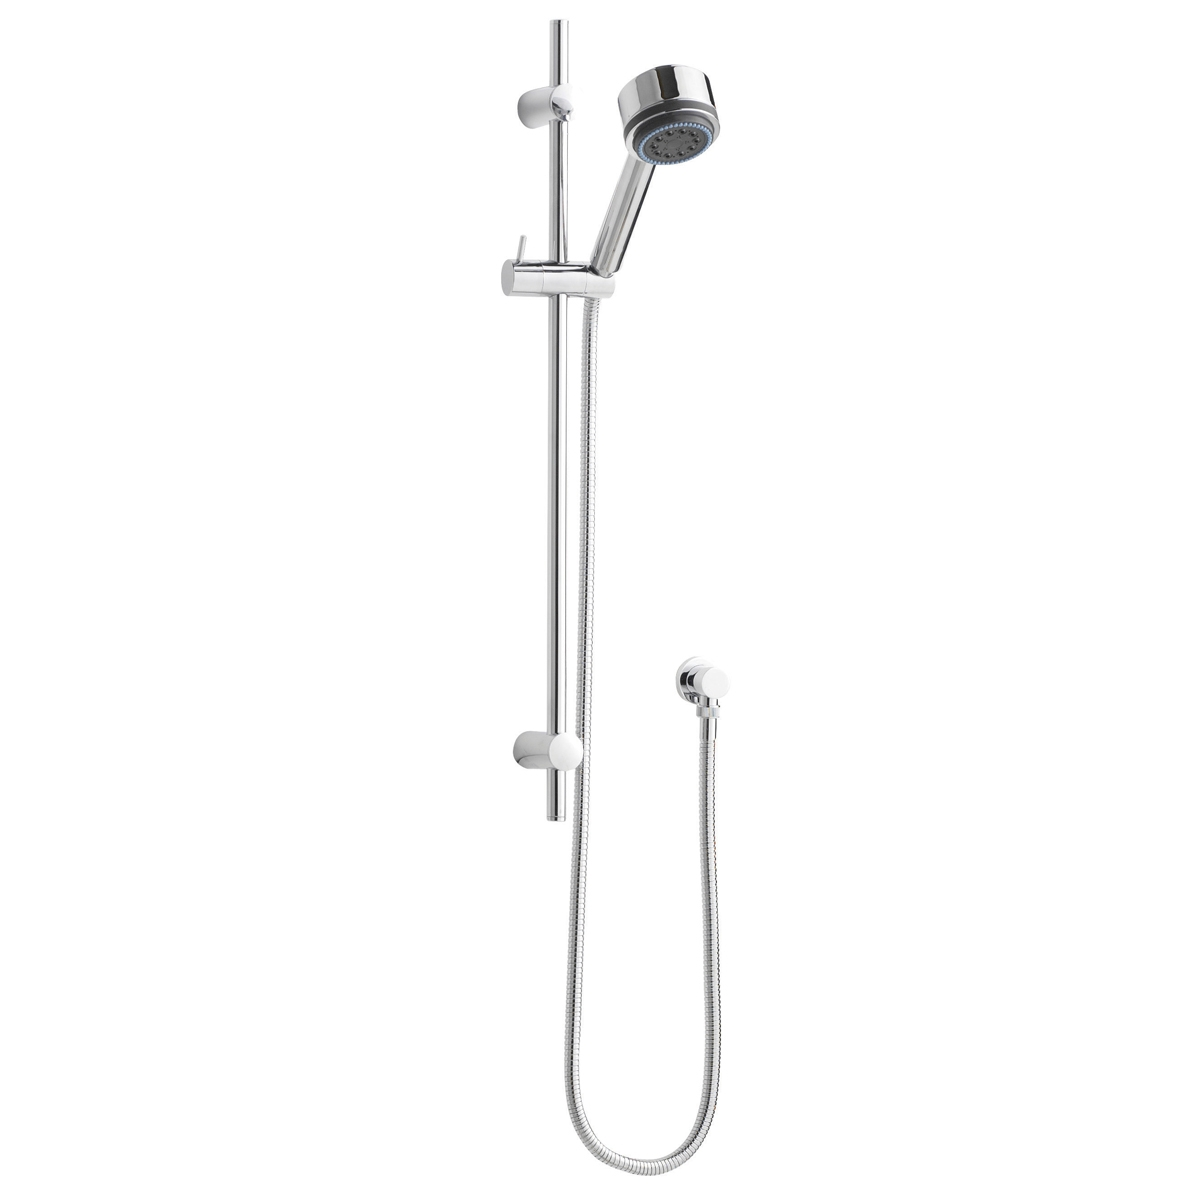 Ultra Linear Value Bar Mixer Shower with Shower Kit